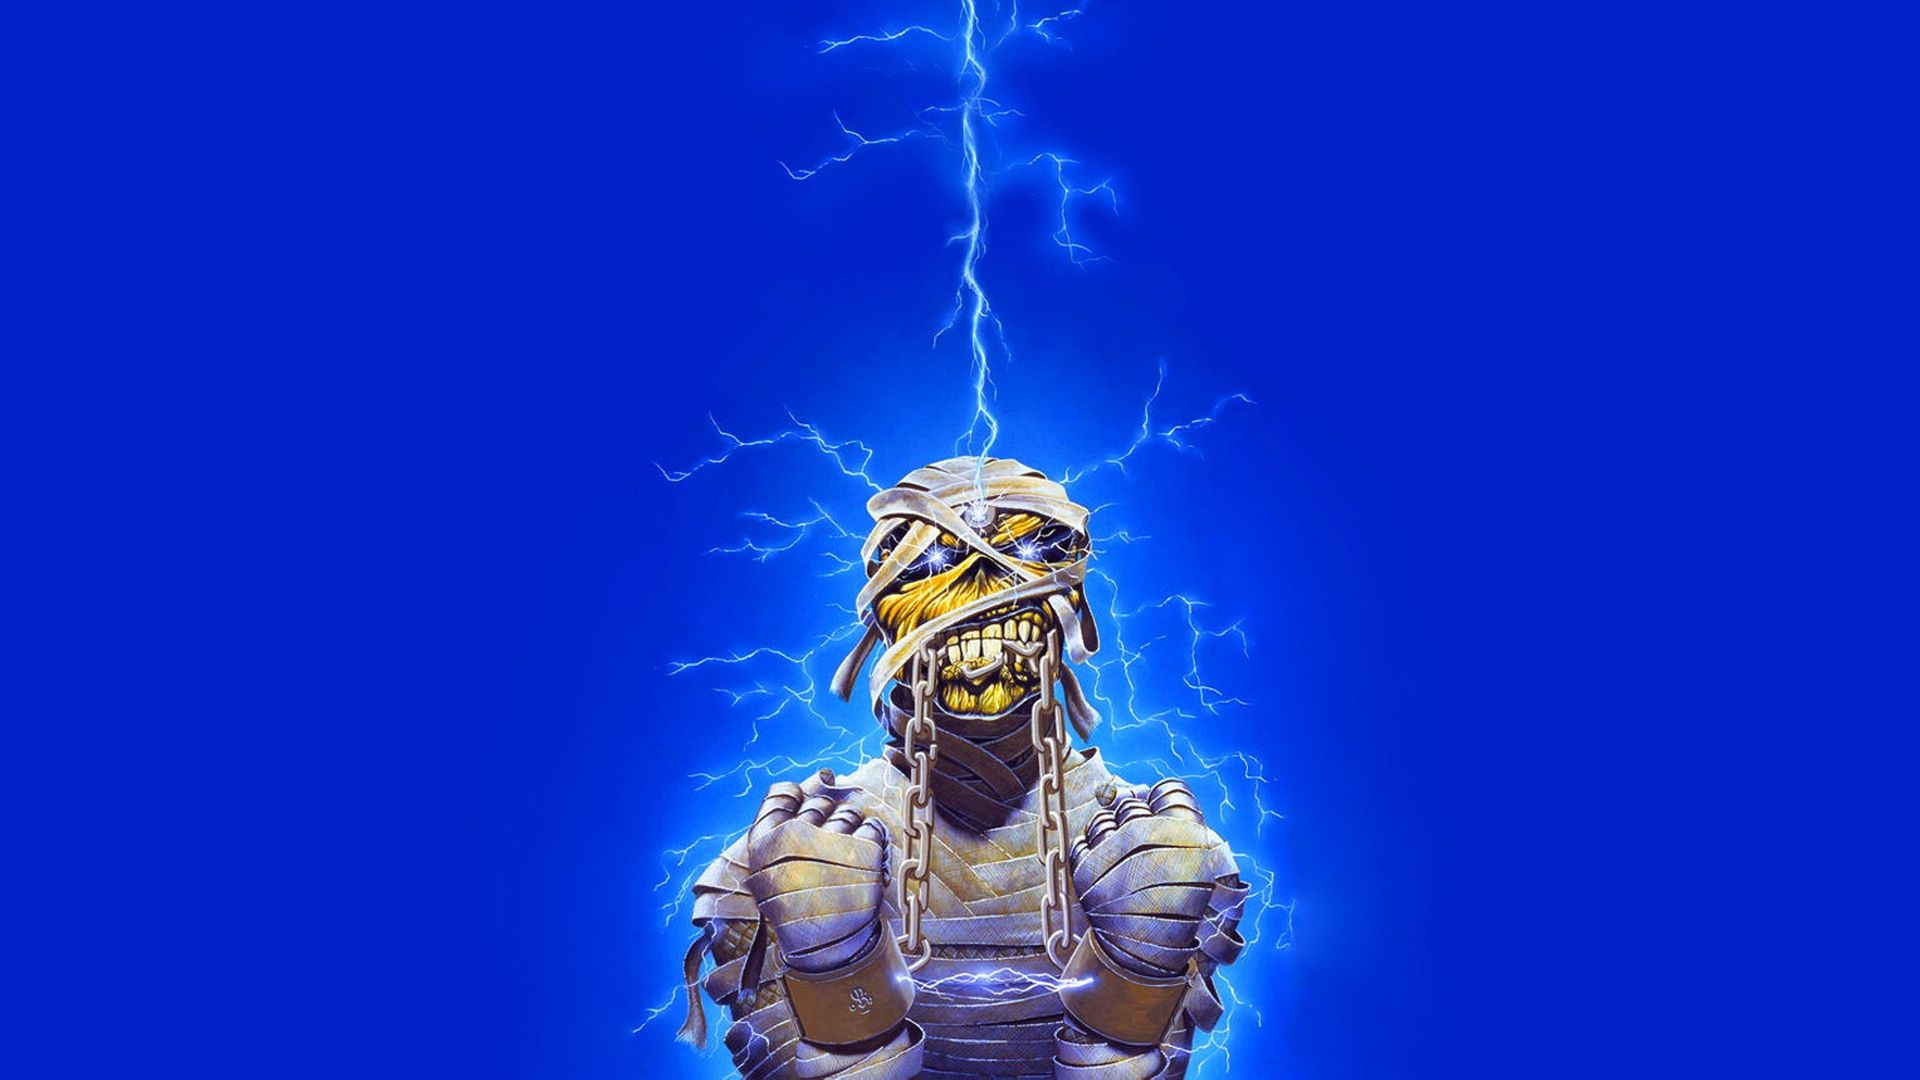 Iron Maiden Wallpapers Hd 1080p